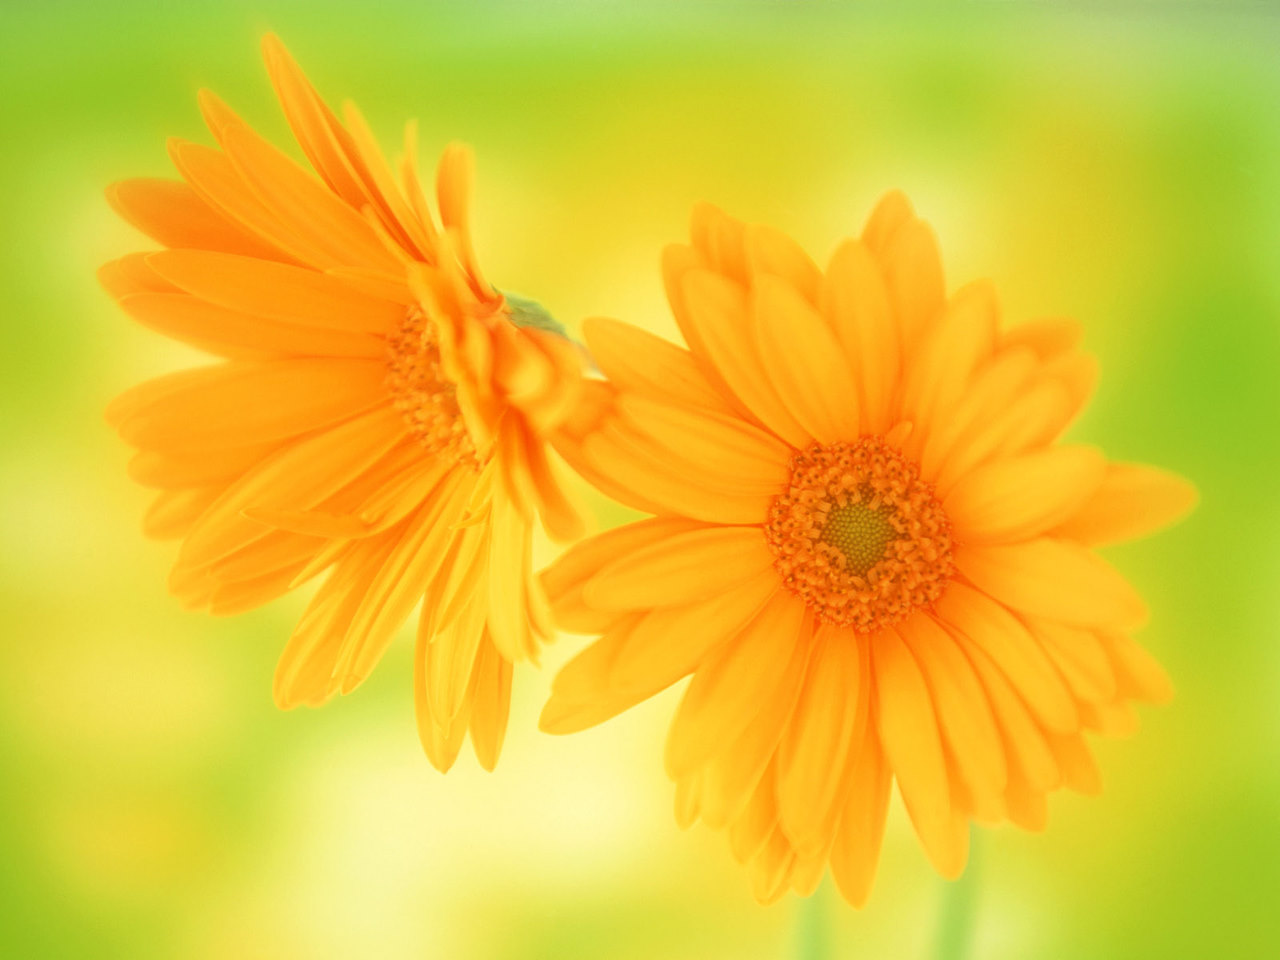 Yellow daisy beautiful flowers wallpaperg aavalon services yellow daisy beautiful flowers wallpaperg izmirmasajfo